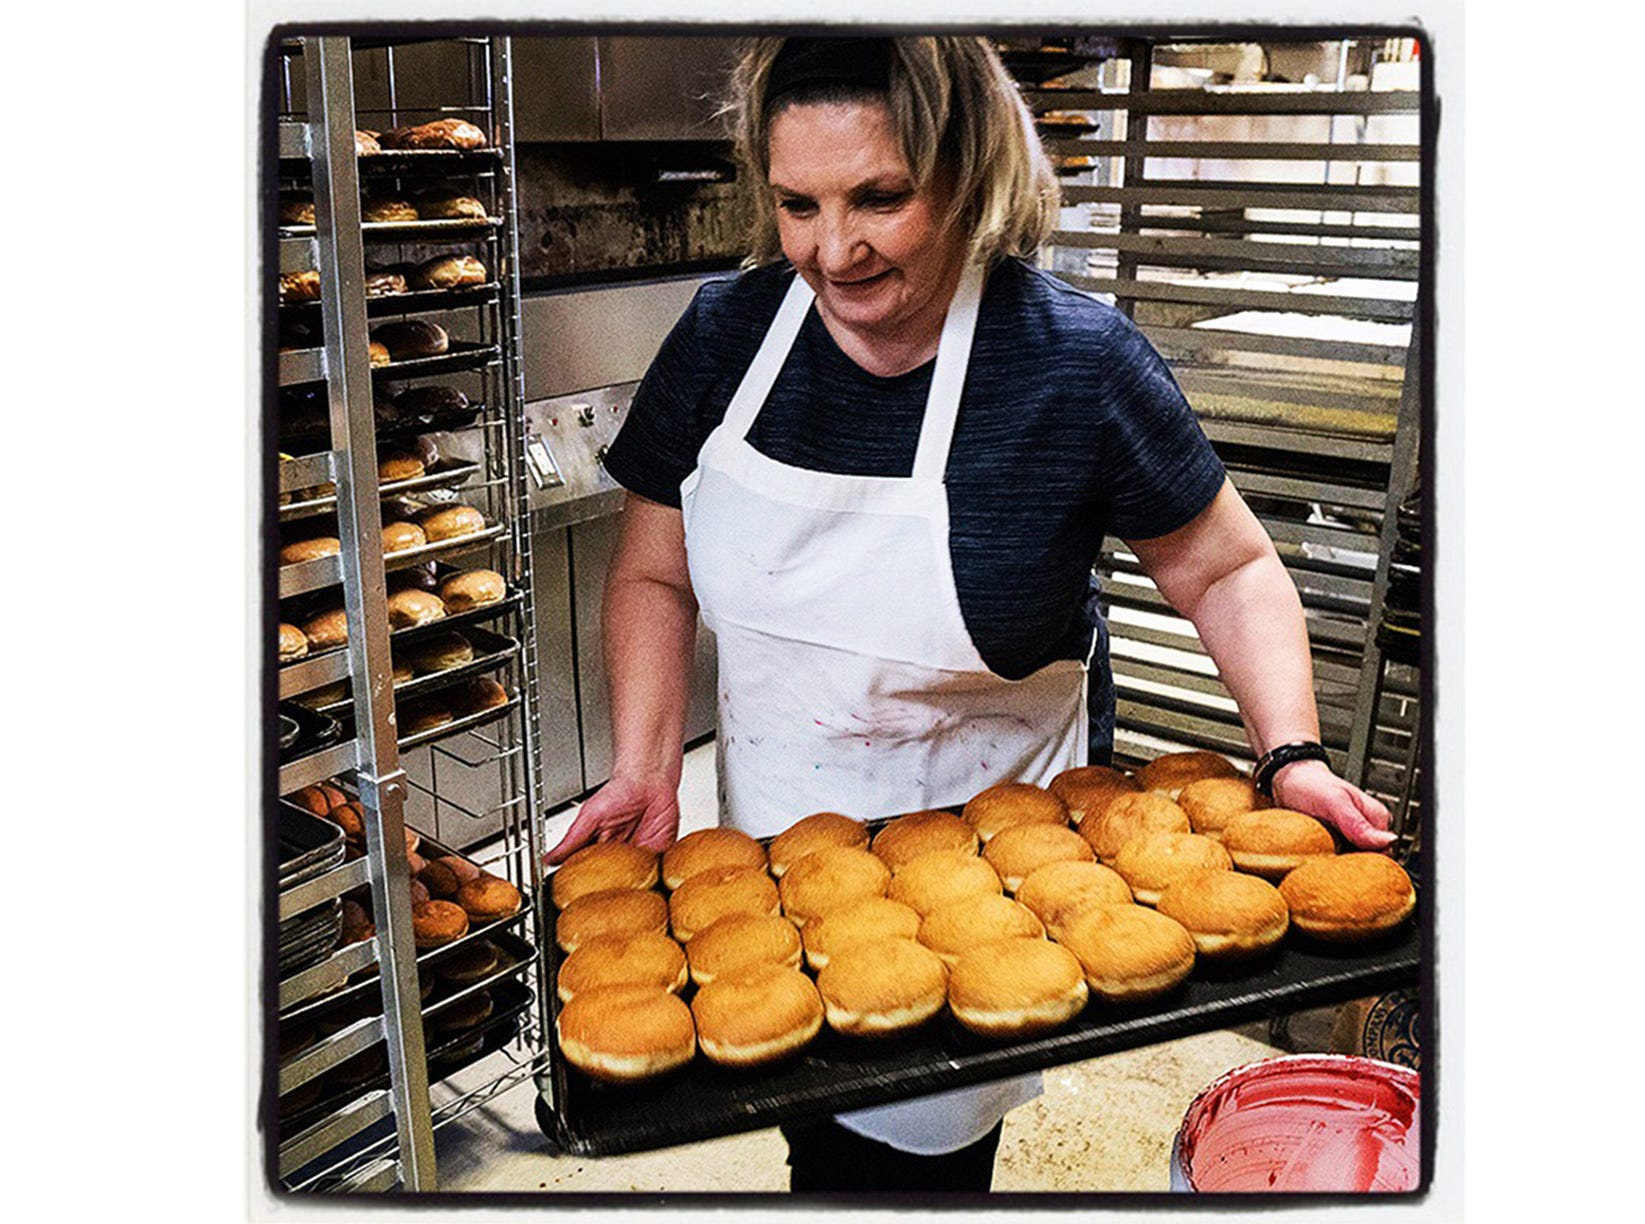 The Livonia Heritage Bakery crew began making paczki on Sunday for the annual celebrations on Fat Tuesday, the day before the beginning of Lent. Stojka Grezlovska brings another tray up front for customers waiting in line on Monday afternoon. Livonia, Michigan.